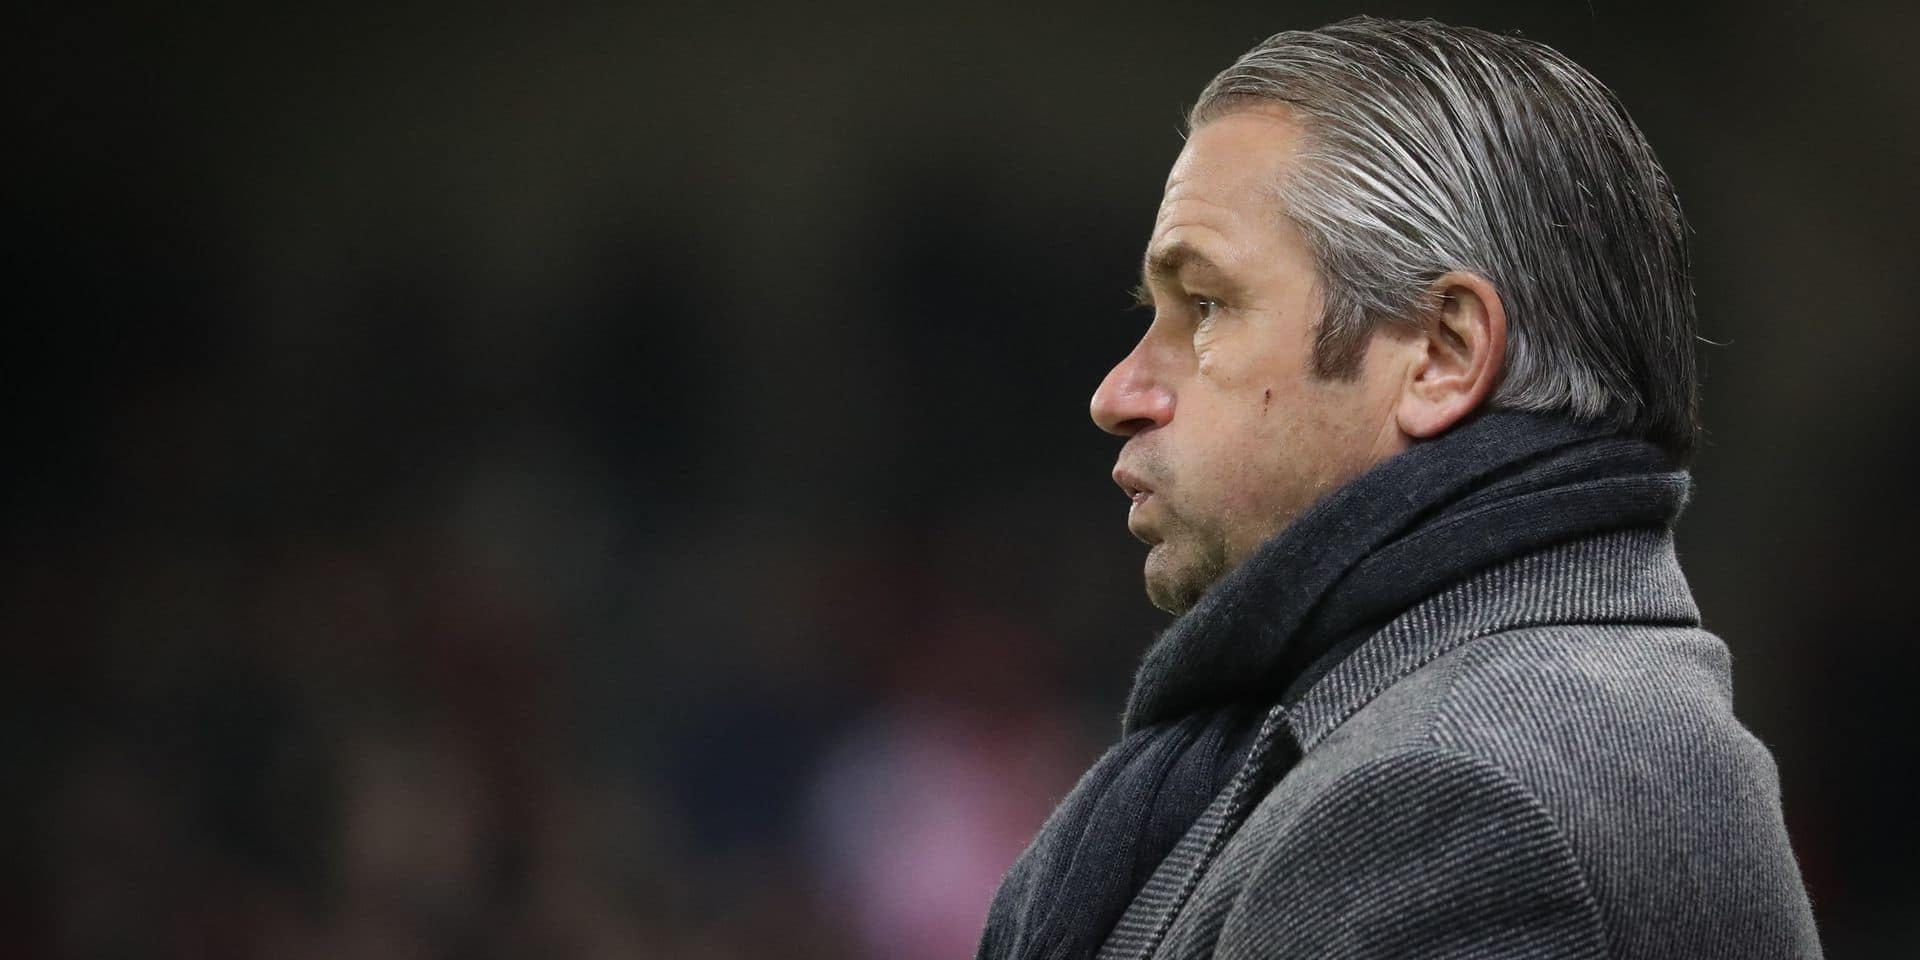 Mouscron's head coach Bernd Storck pictured during a soccer match between Royal Excel Mouscron and Sporting Charleroi, Friday 01 February 2019 in Mouscron, on day 24th of the 'Jupiler Pro League' Belgian soccer championship season 2018-2019. BELGA PHOTO VIRGINIE LEFOUR